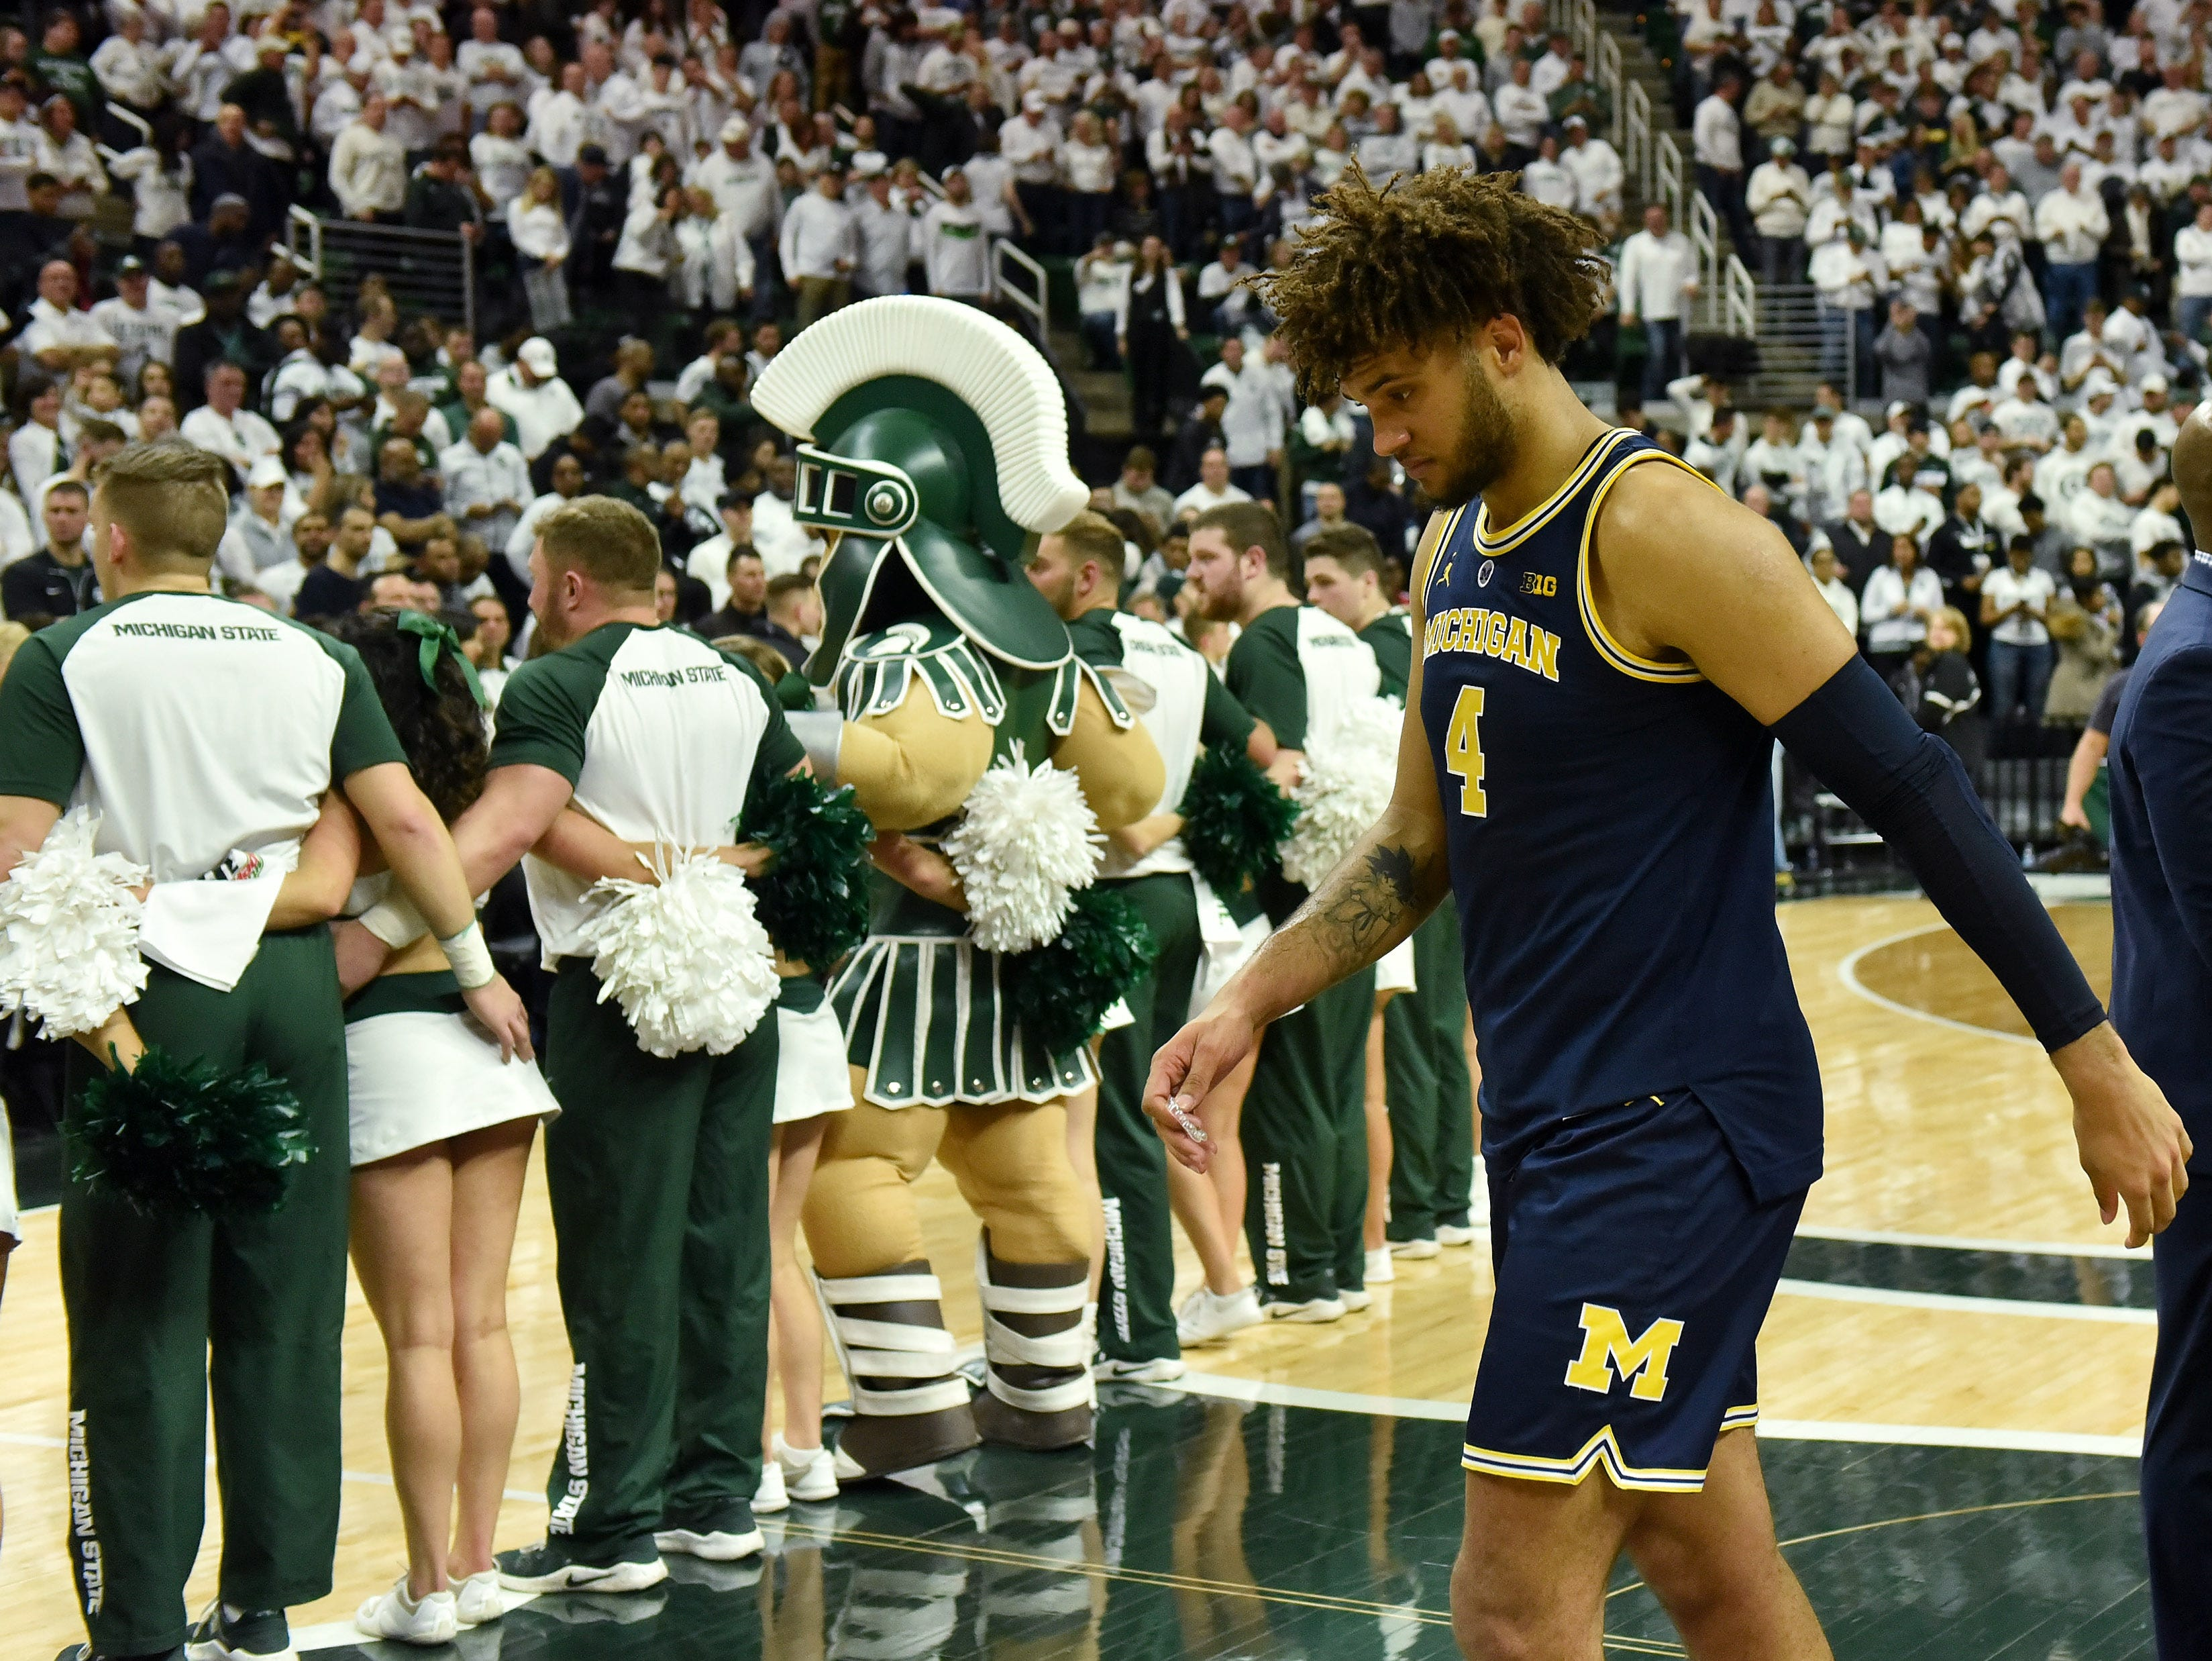 Michigan forward Isaiah Livers (4) walks off the floor after the game.   Michigan vs Michigan State at the Breslin Center in East Lansing, Mich. on Mar. 9, 2019.  Michigan State wins, 75-63.(Robin Buckson / Detroit News)